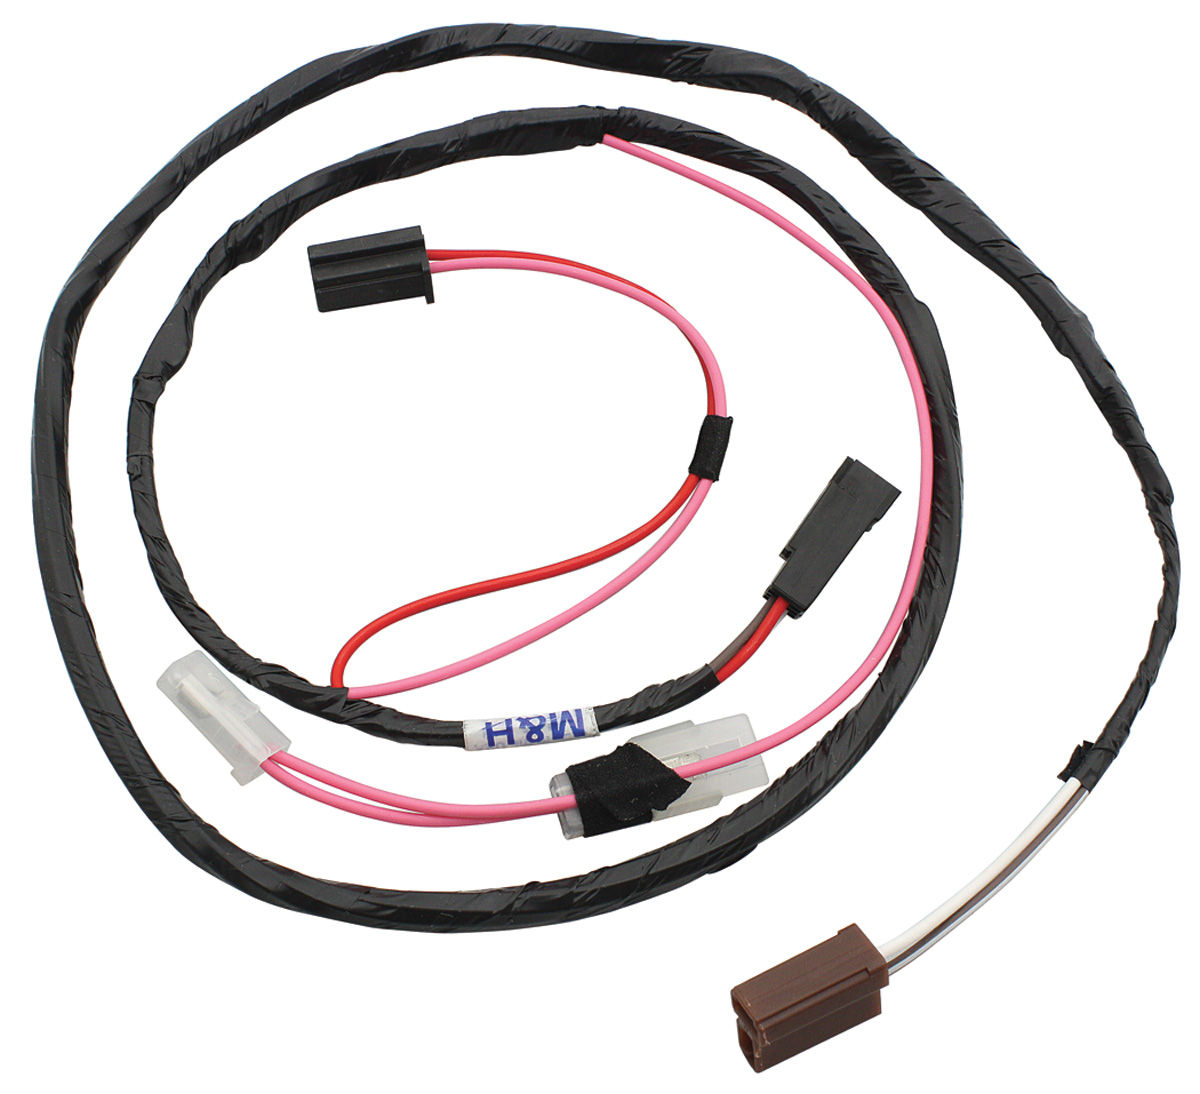 1970 72 monte carlo cruise harness by m h for years 1970 1971 1972 opgi